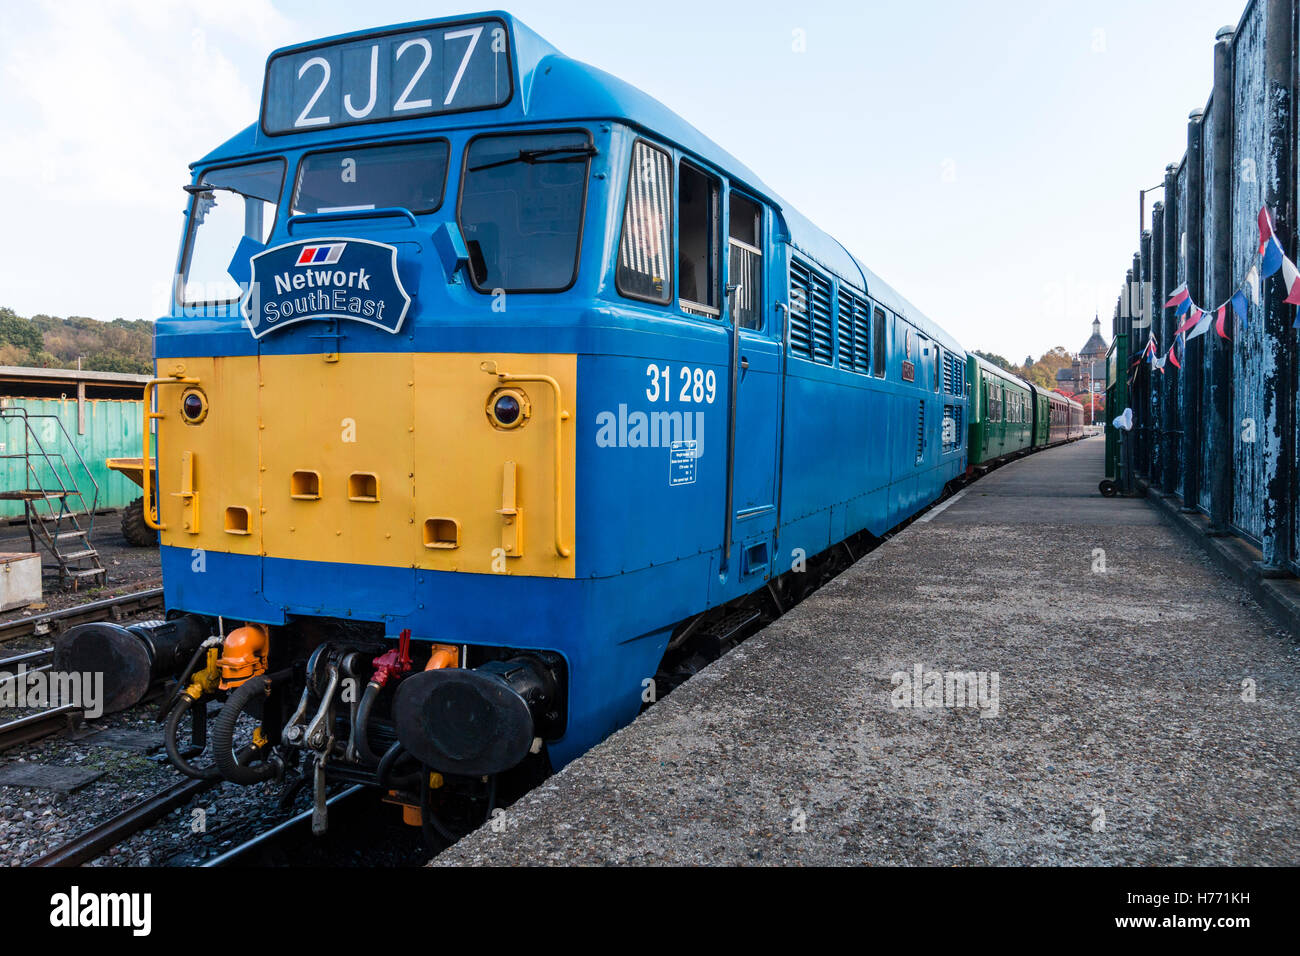 England, Spa Valley railway. British Rail Network South East class 31 type locomotive, blue and yellow livery, with - Stock Image